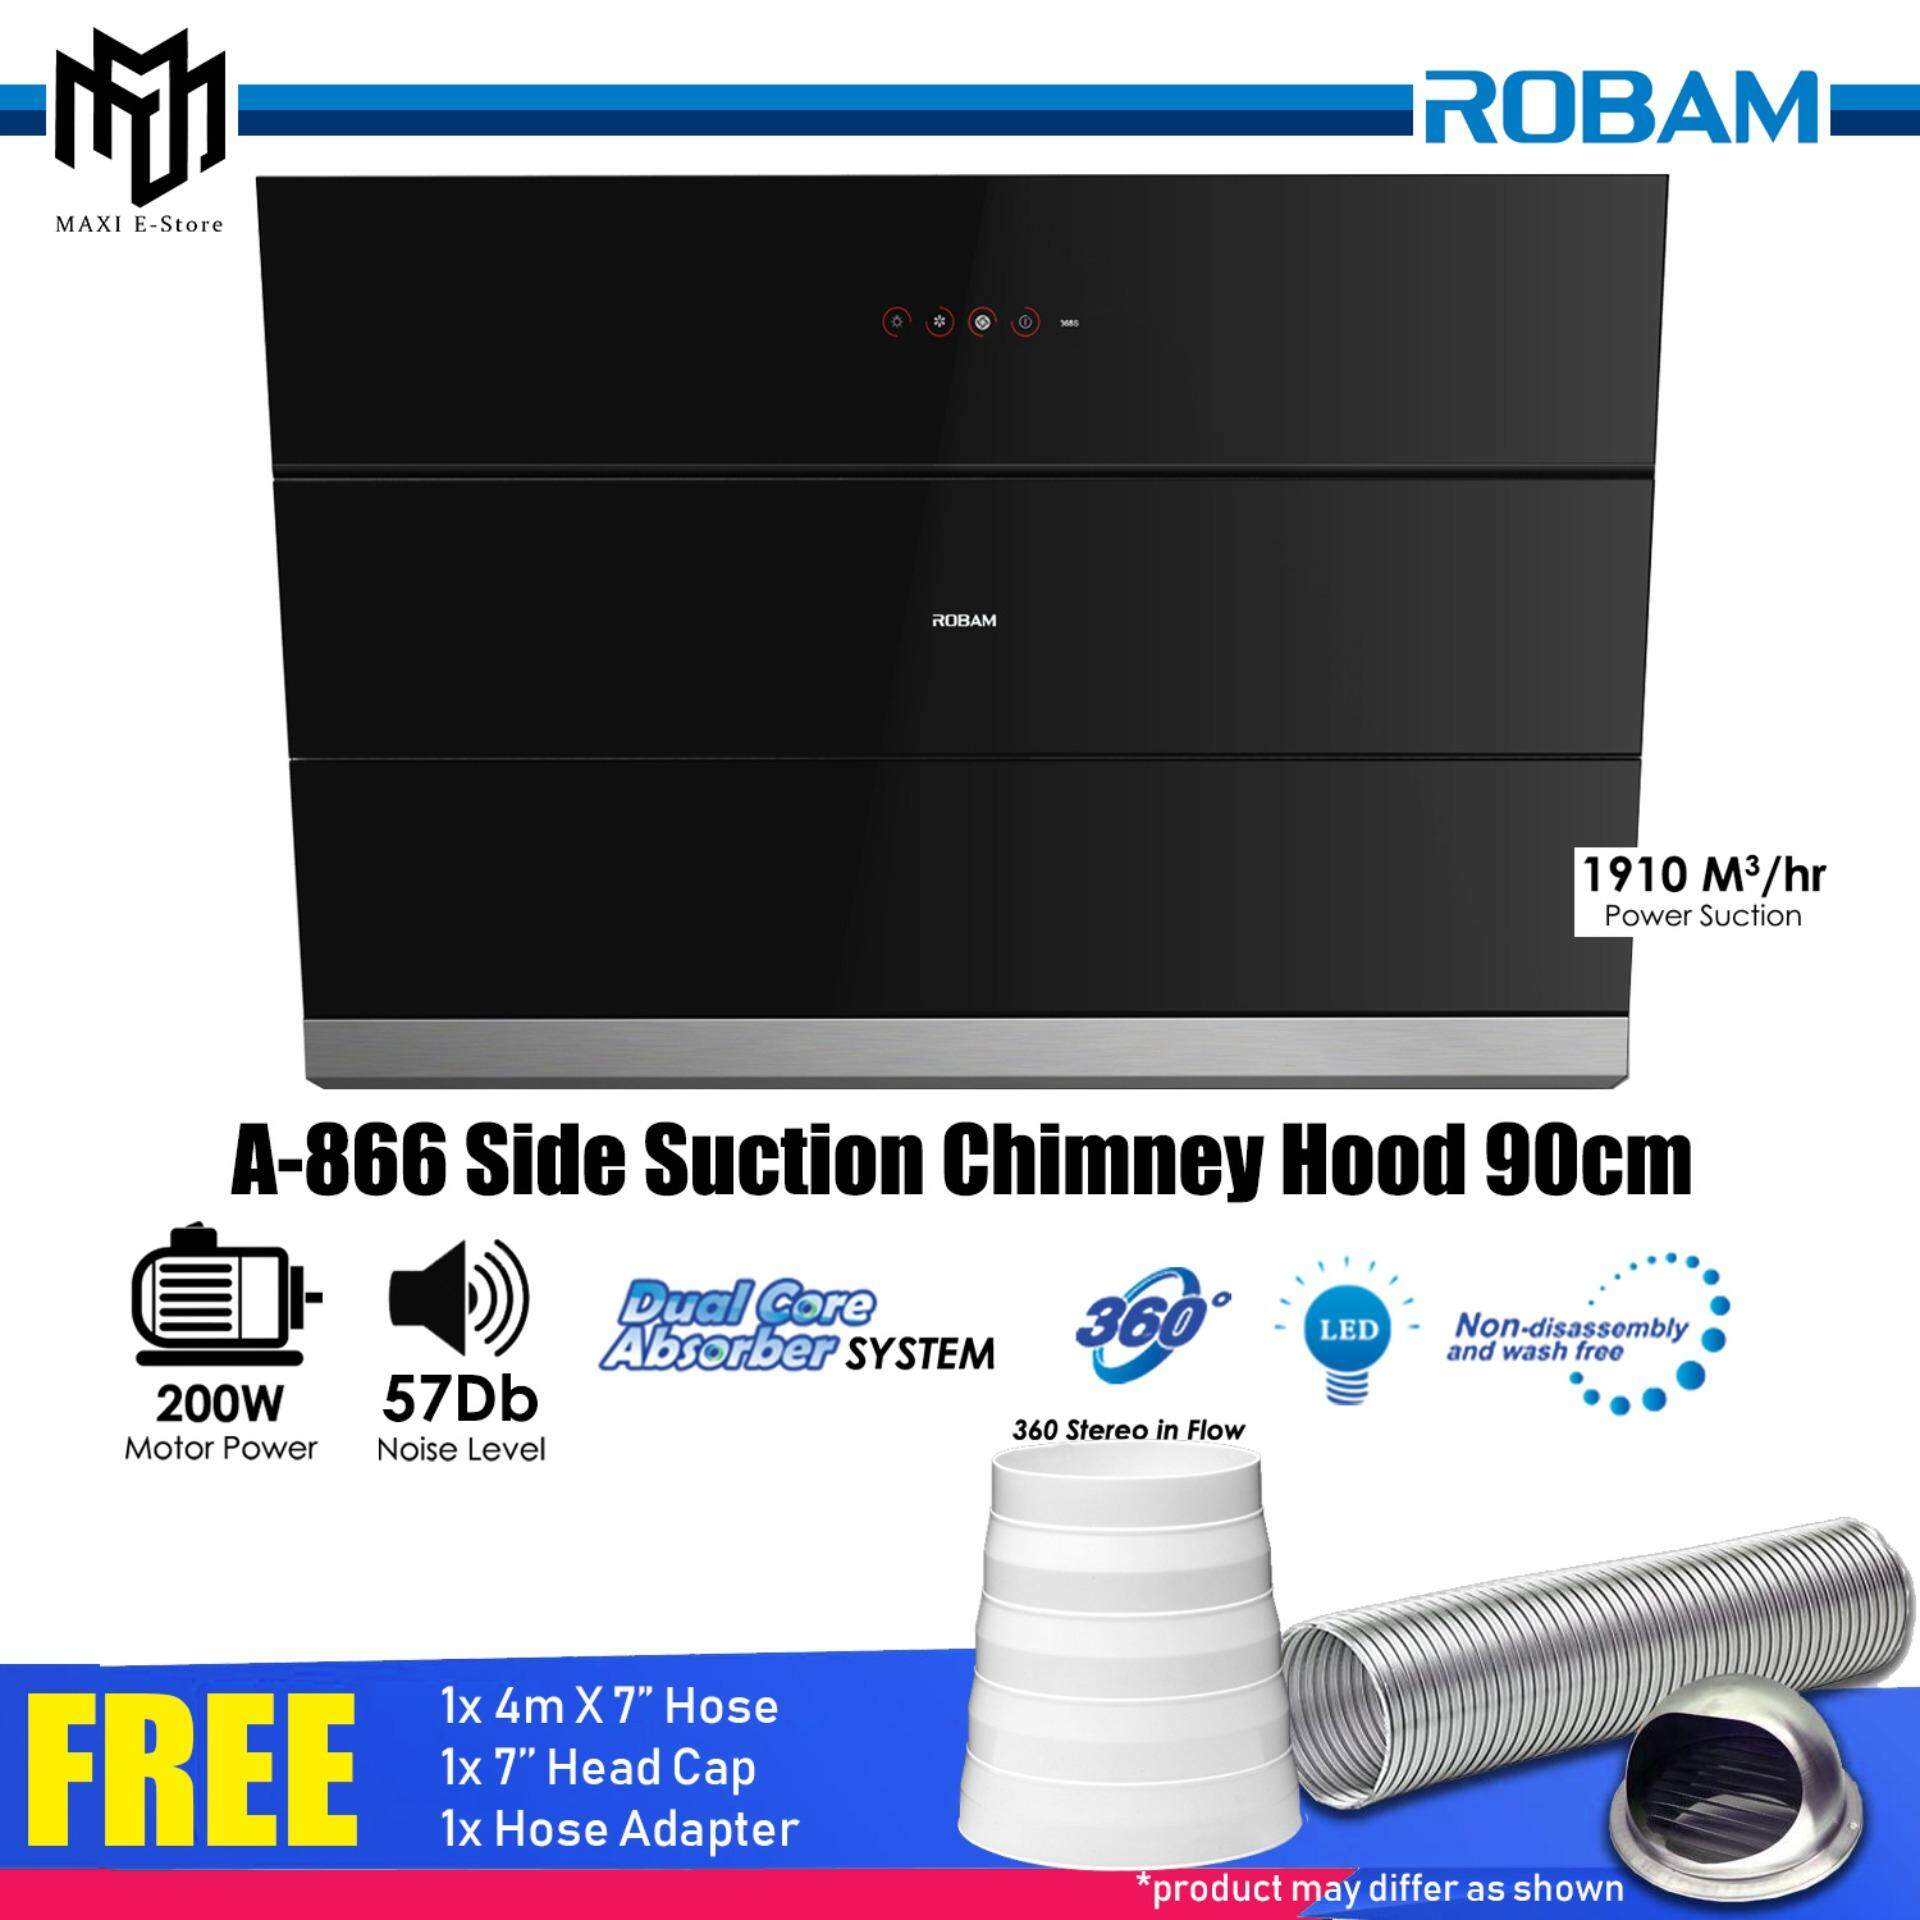 Robam A866 Side Suction Chimney Hood 90cm 1910 M3/hr Power Suction